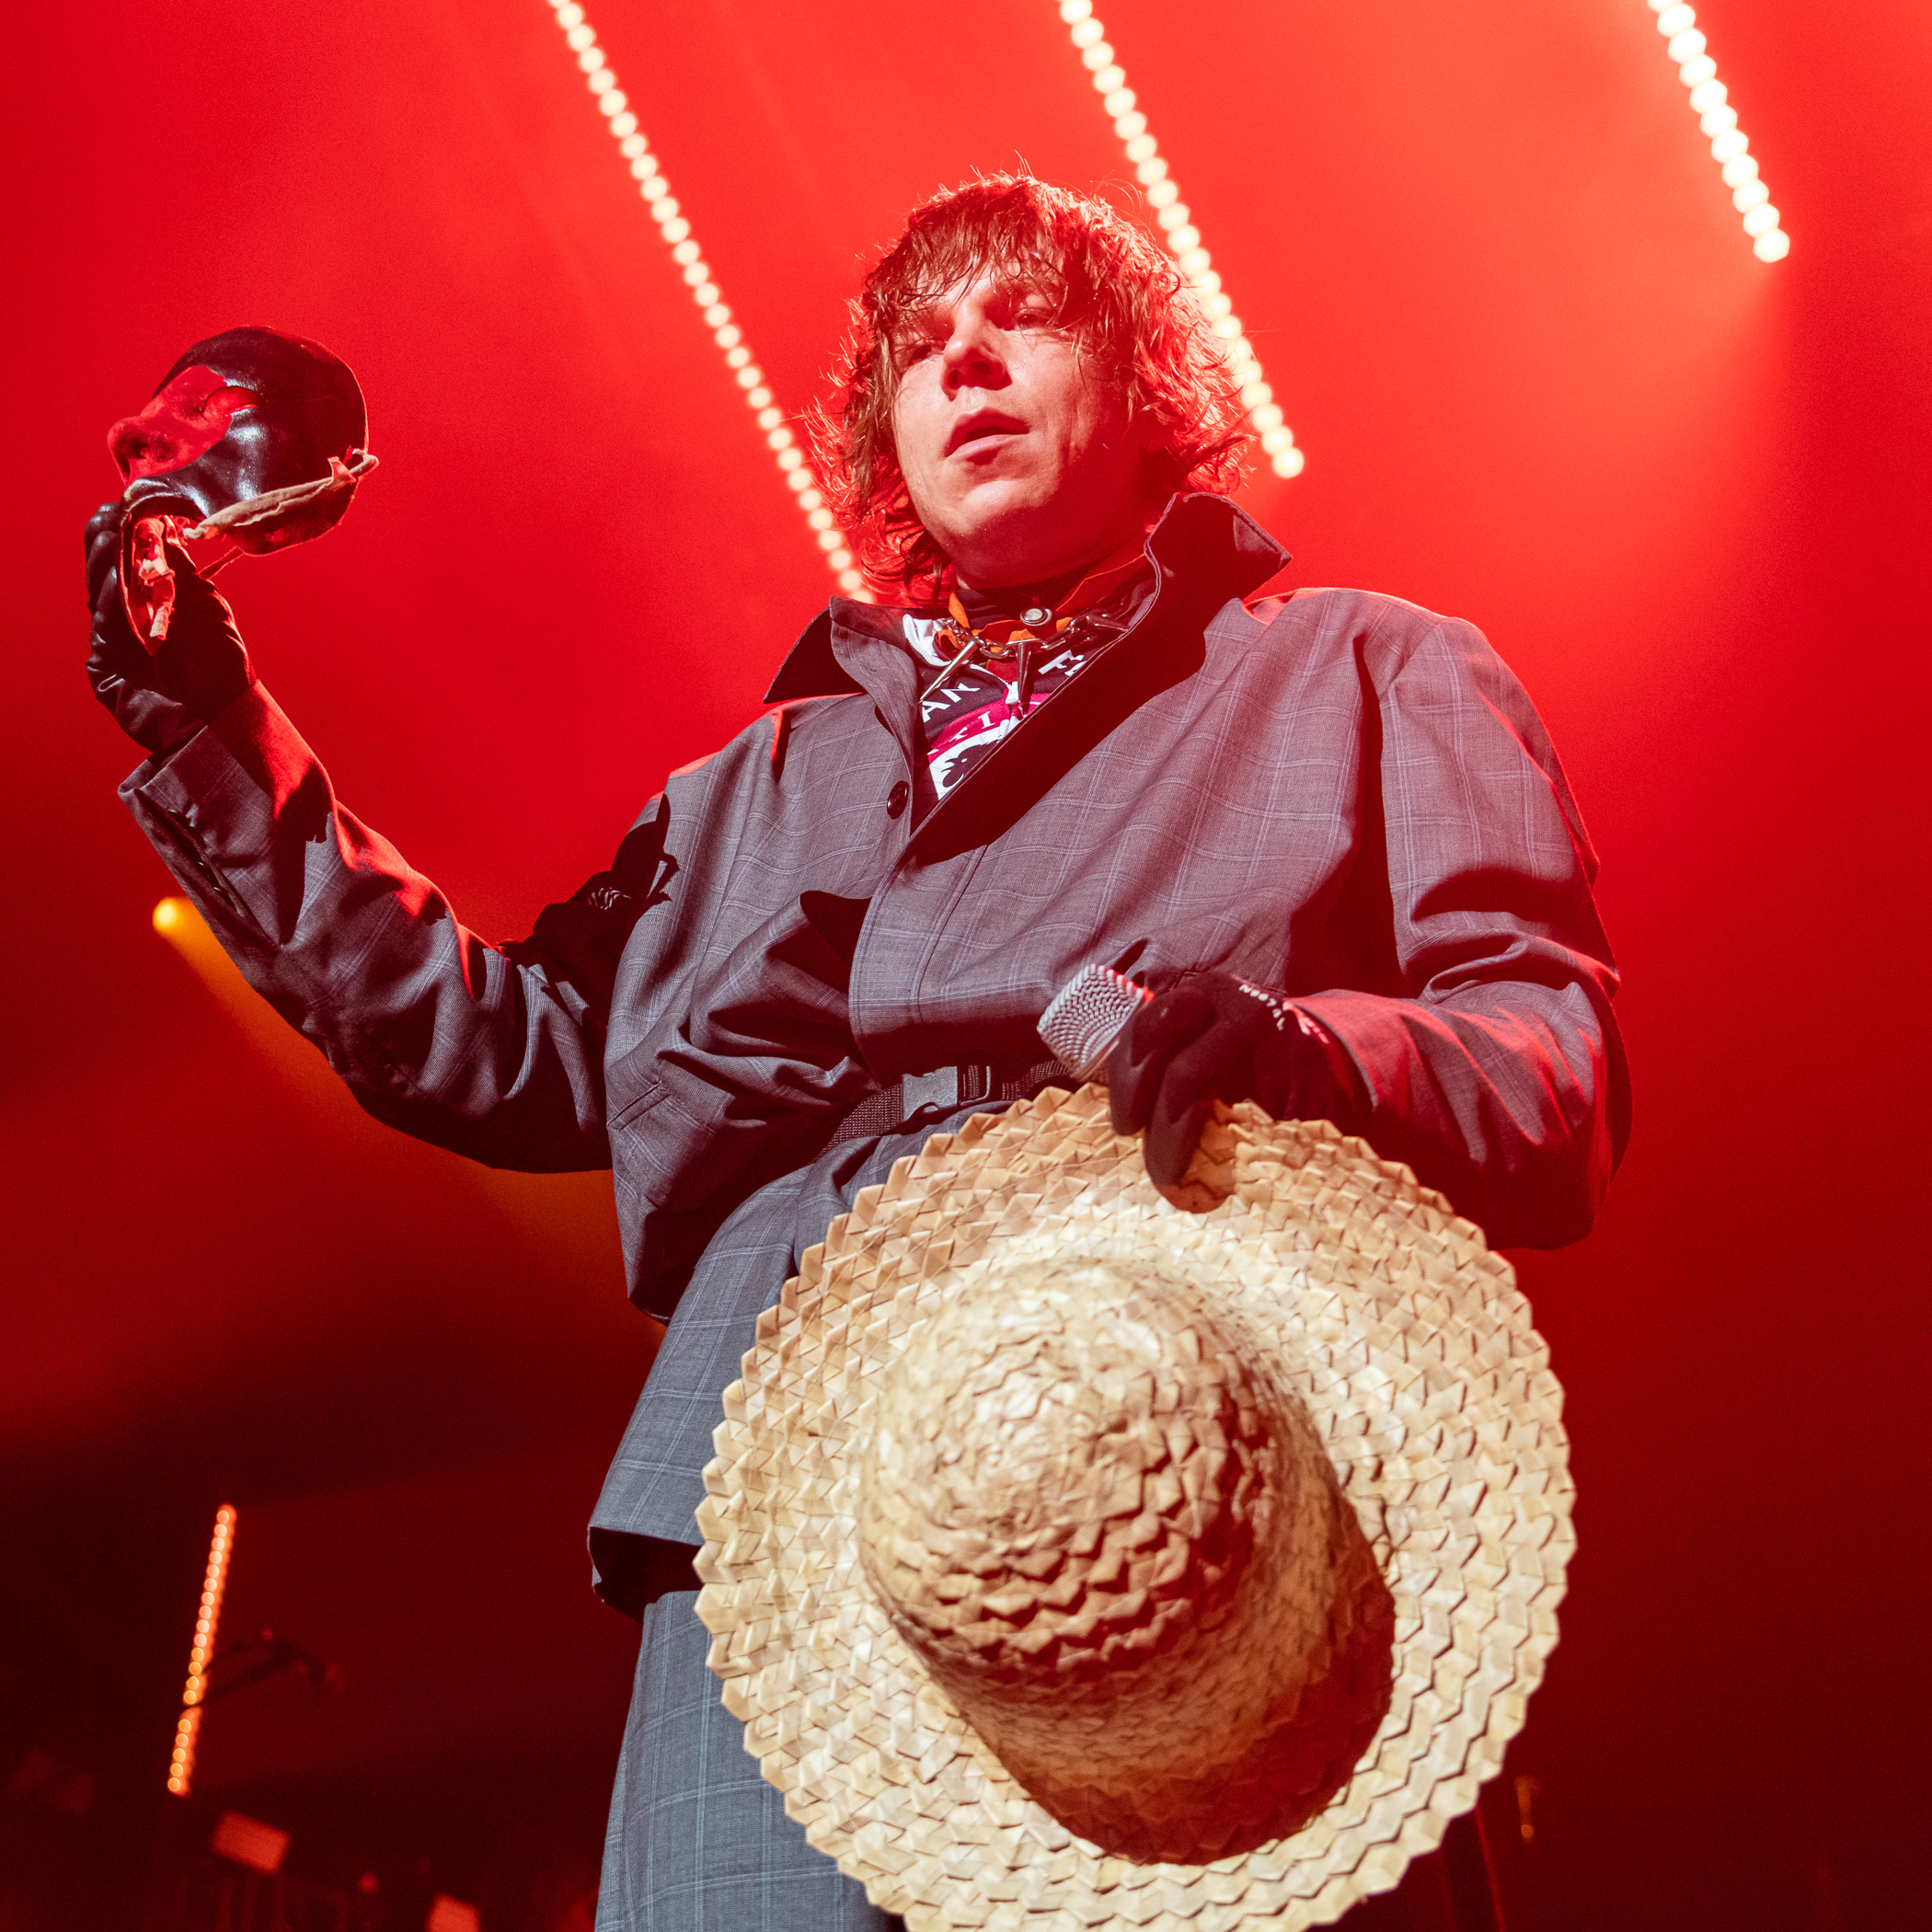 Cage The Elephant Performs at Merriweather Post Pavilion